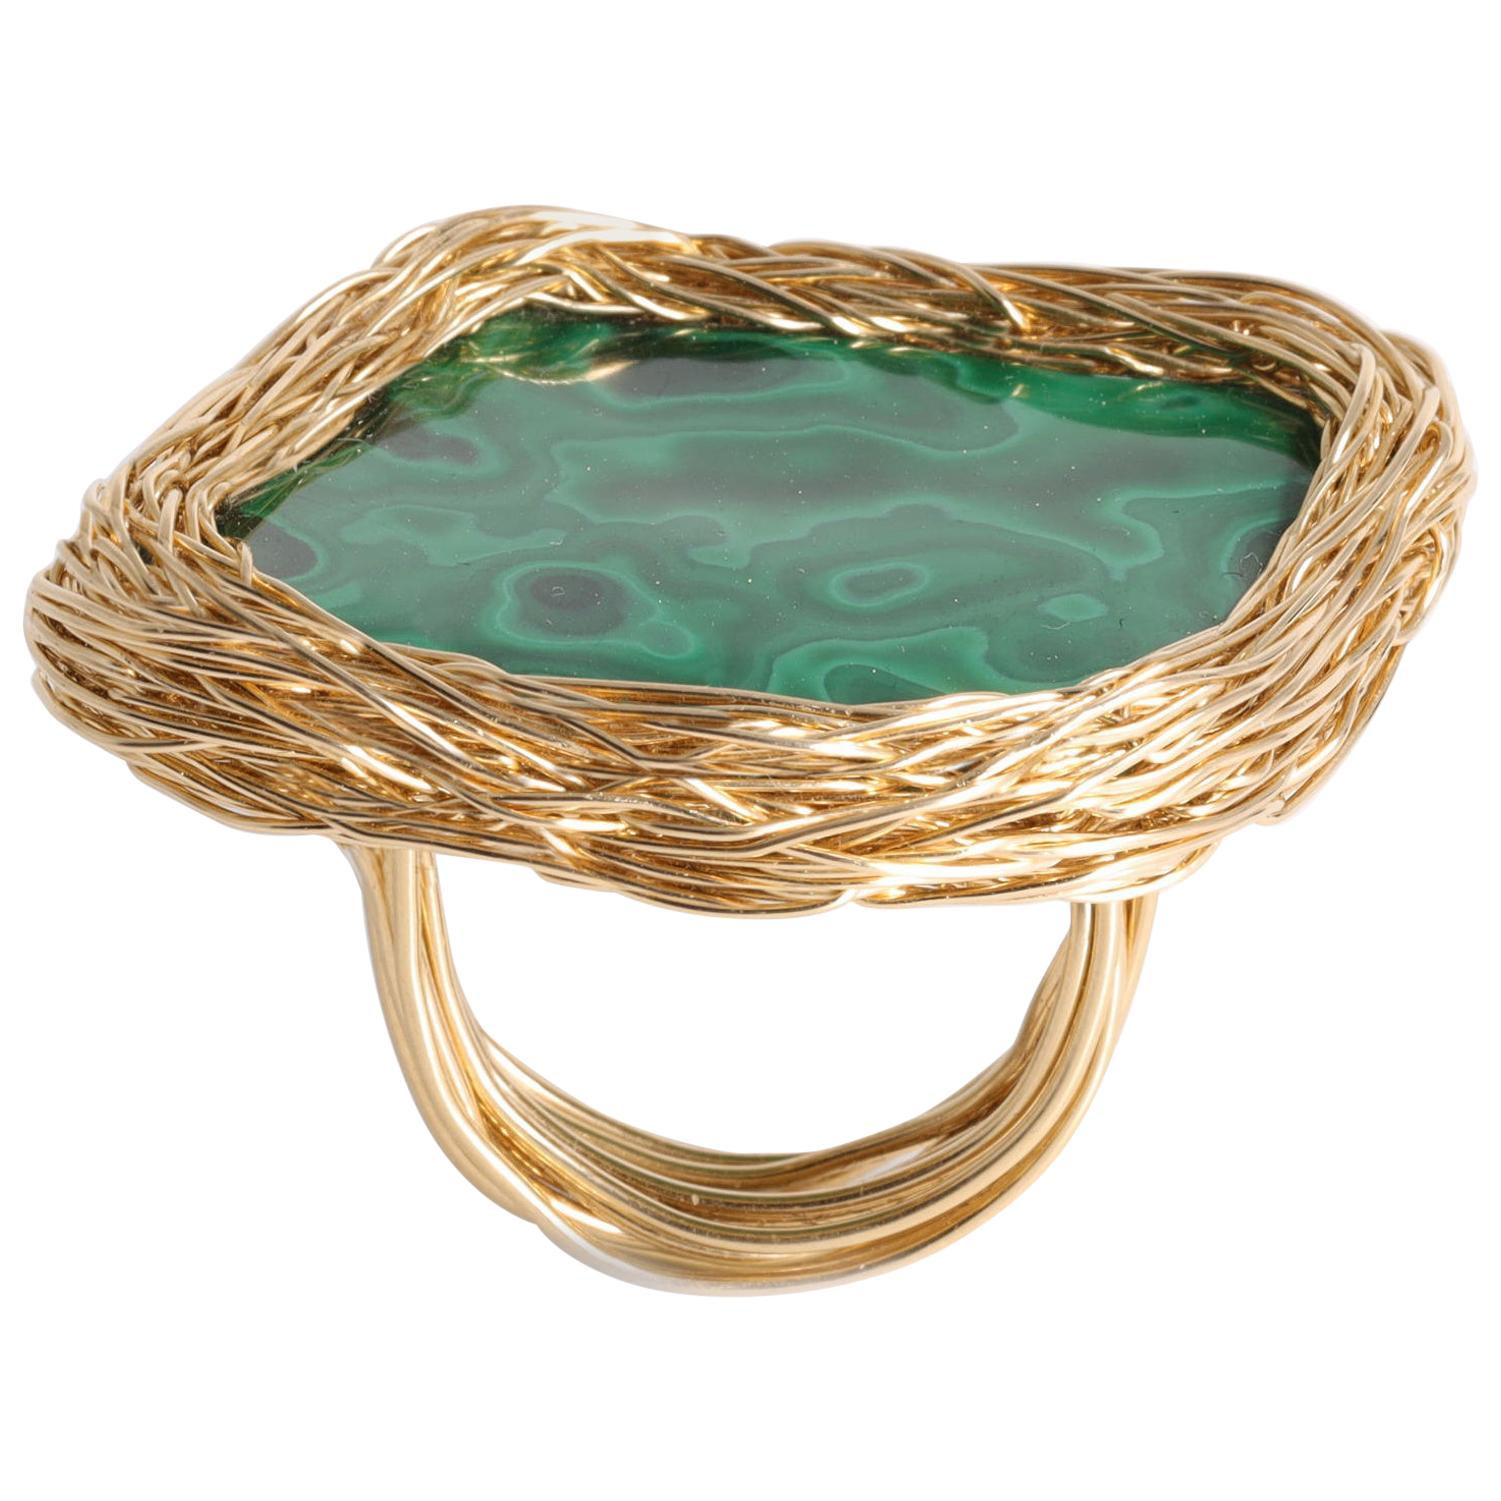 One-off Malachite 14 Kt Gold F. Cocktail & Statement Ring by the Artist Herself